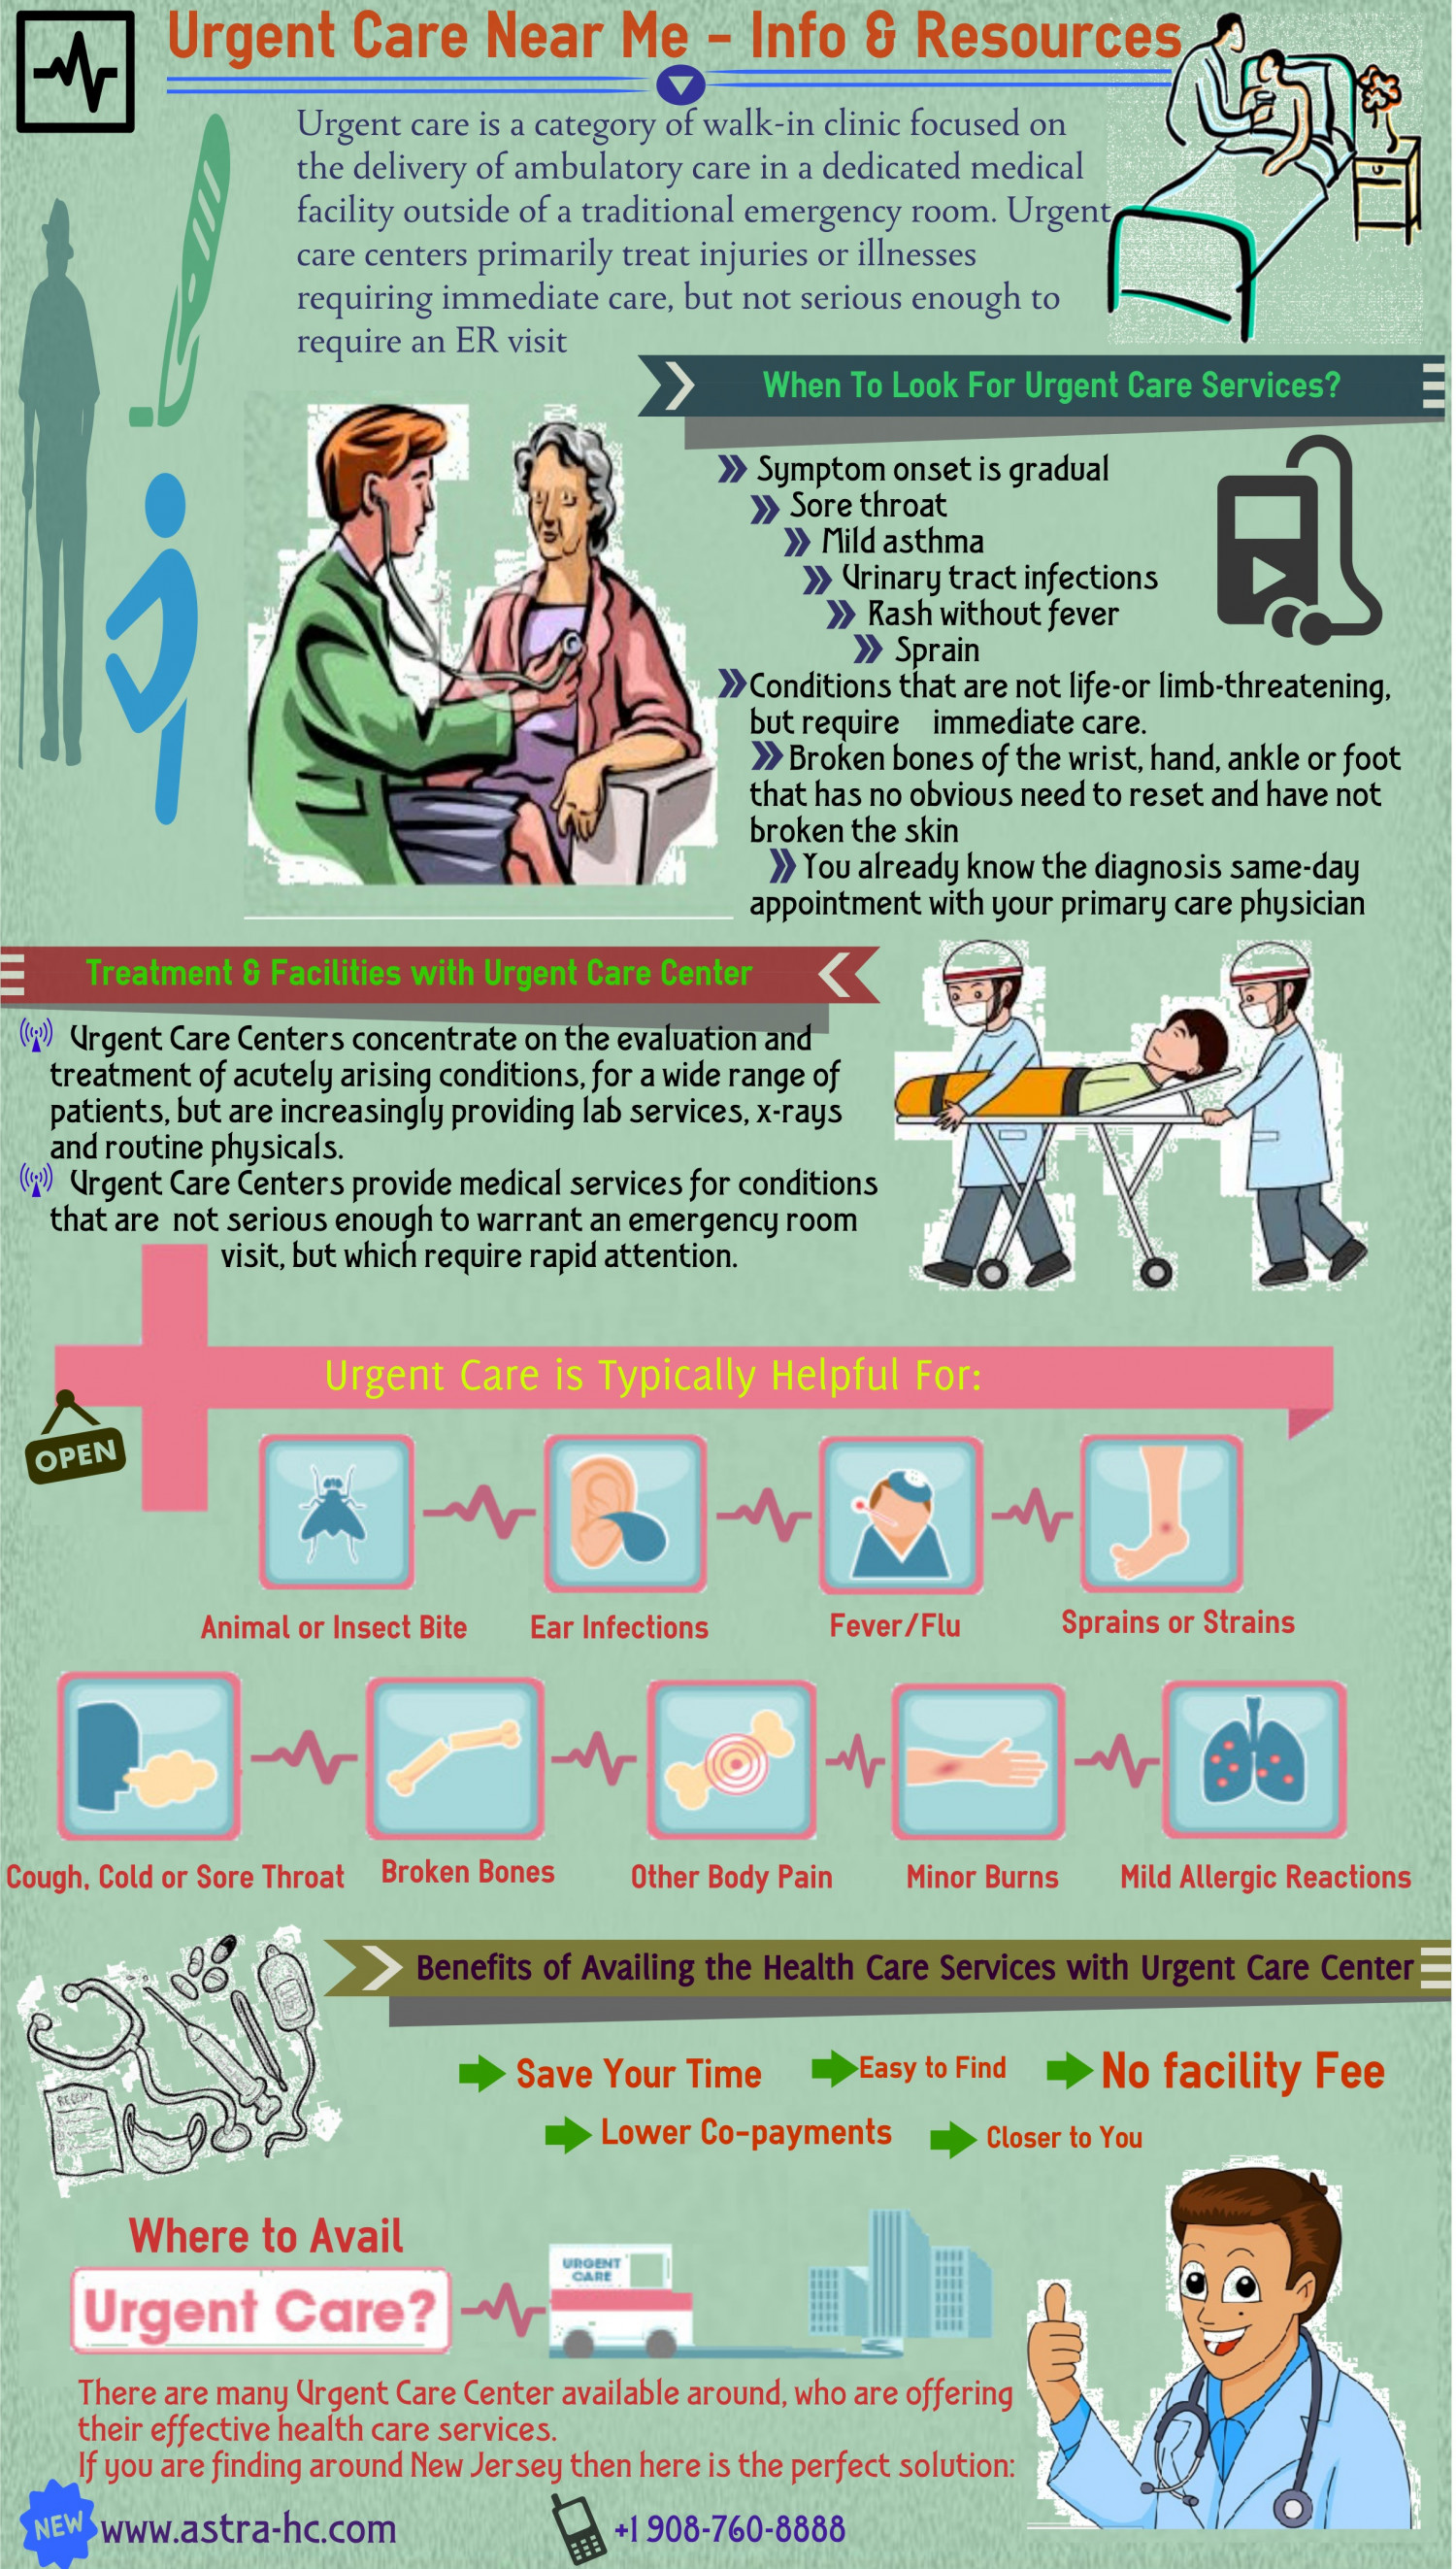 Urgent Care Near Me - Info & Resources Infographic